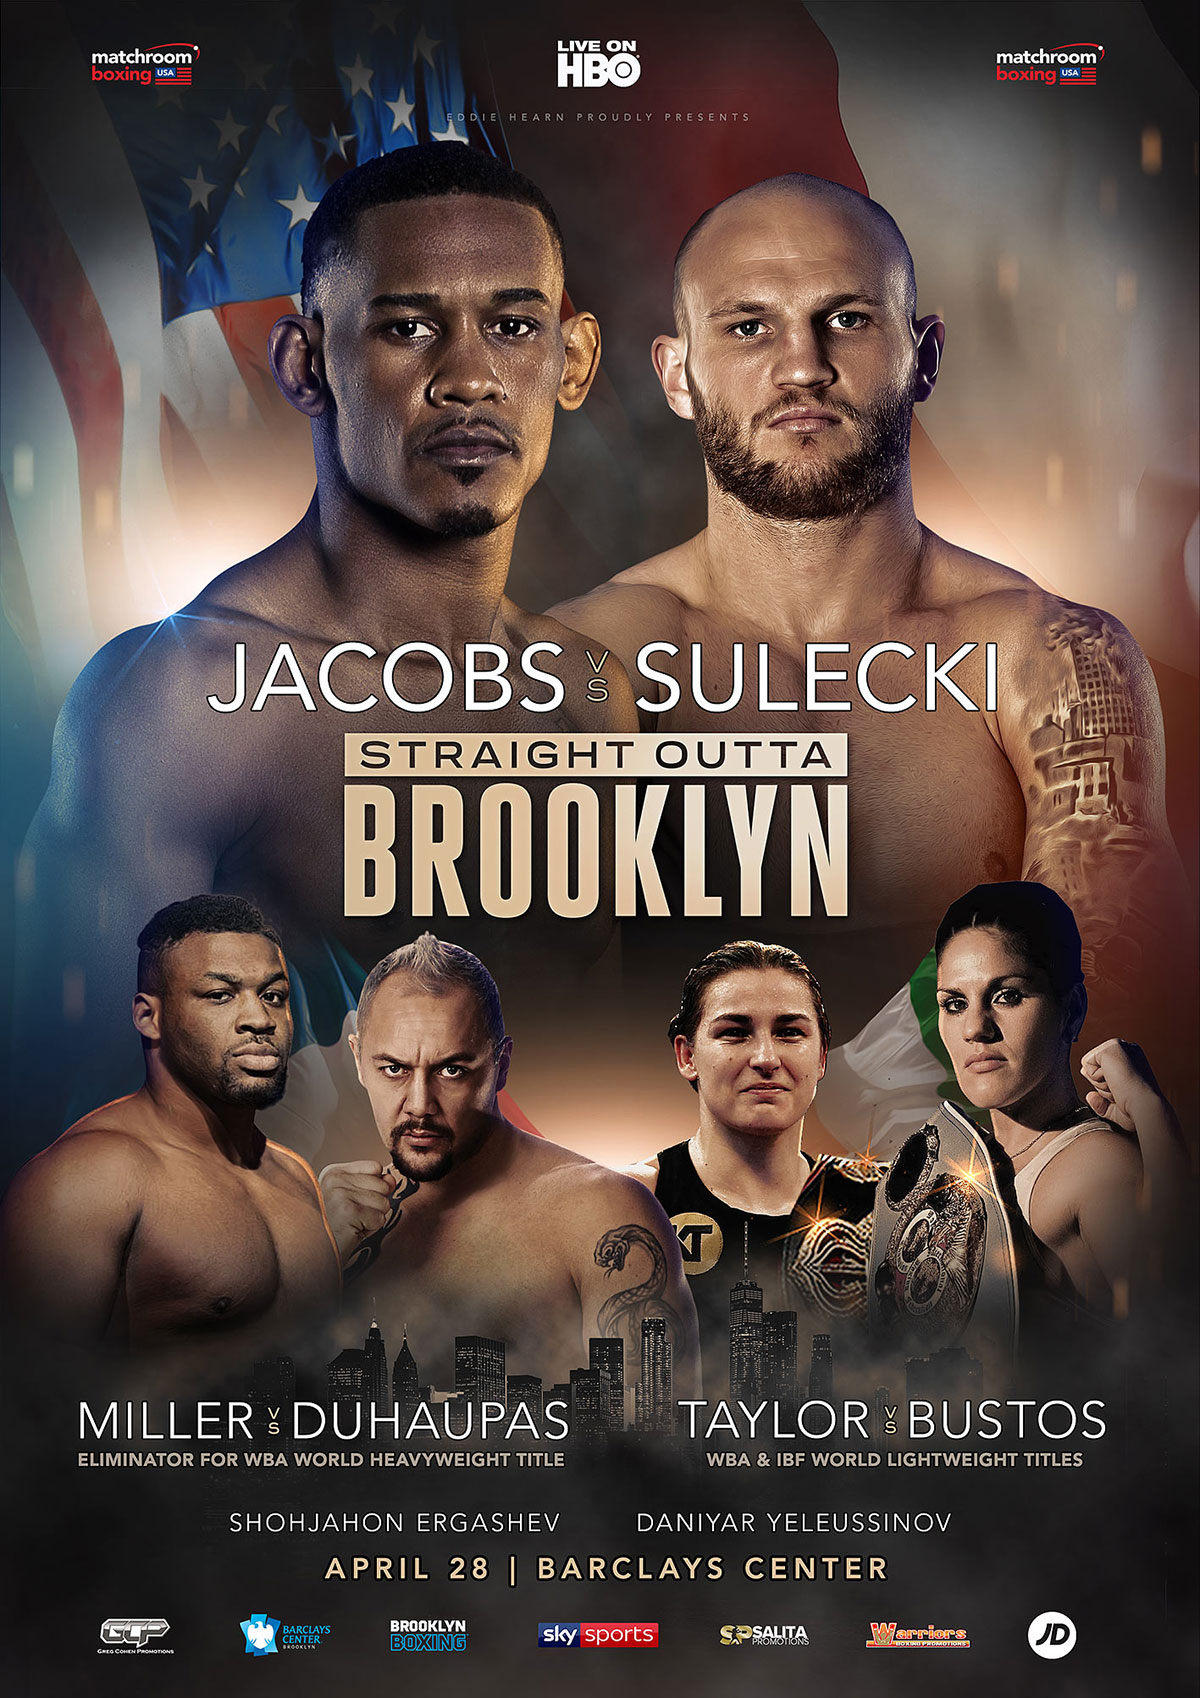 fight artwork for Jacobs vs Sulecki in Brooklyn, NY